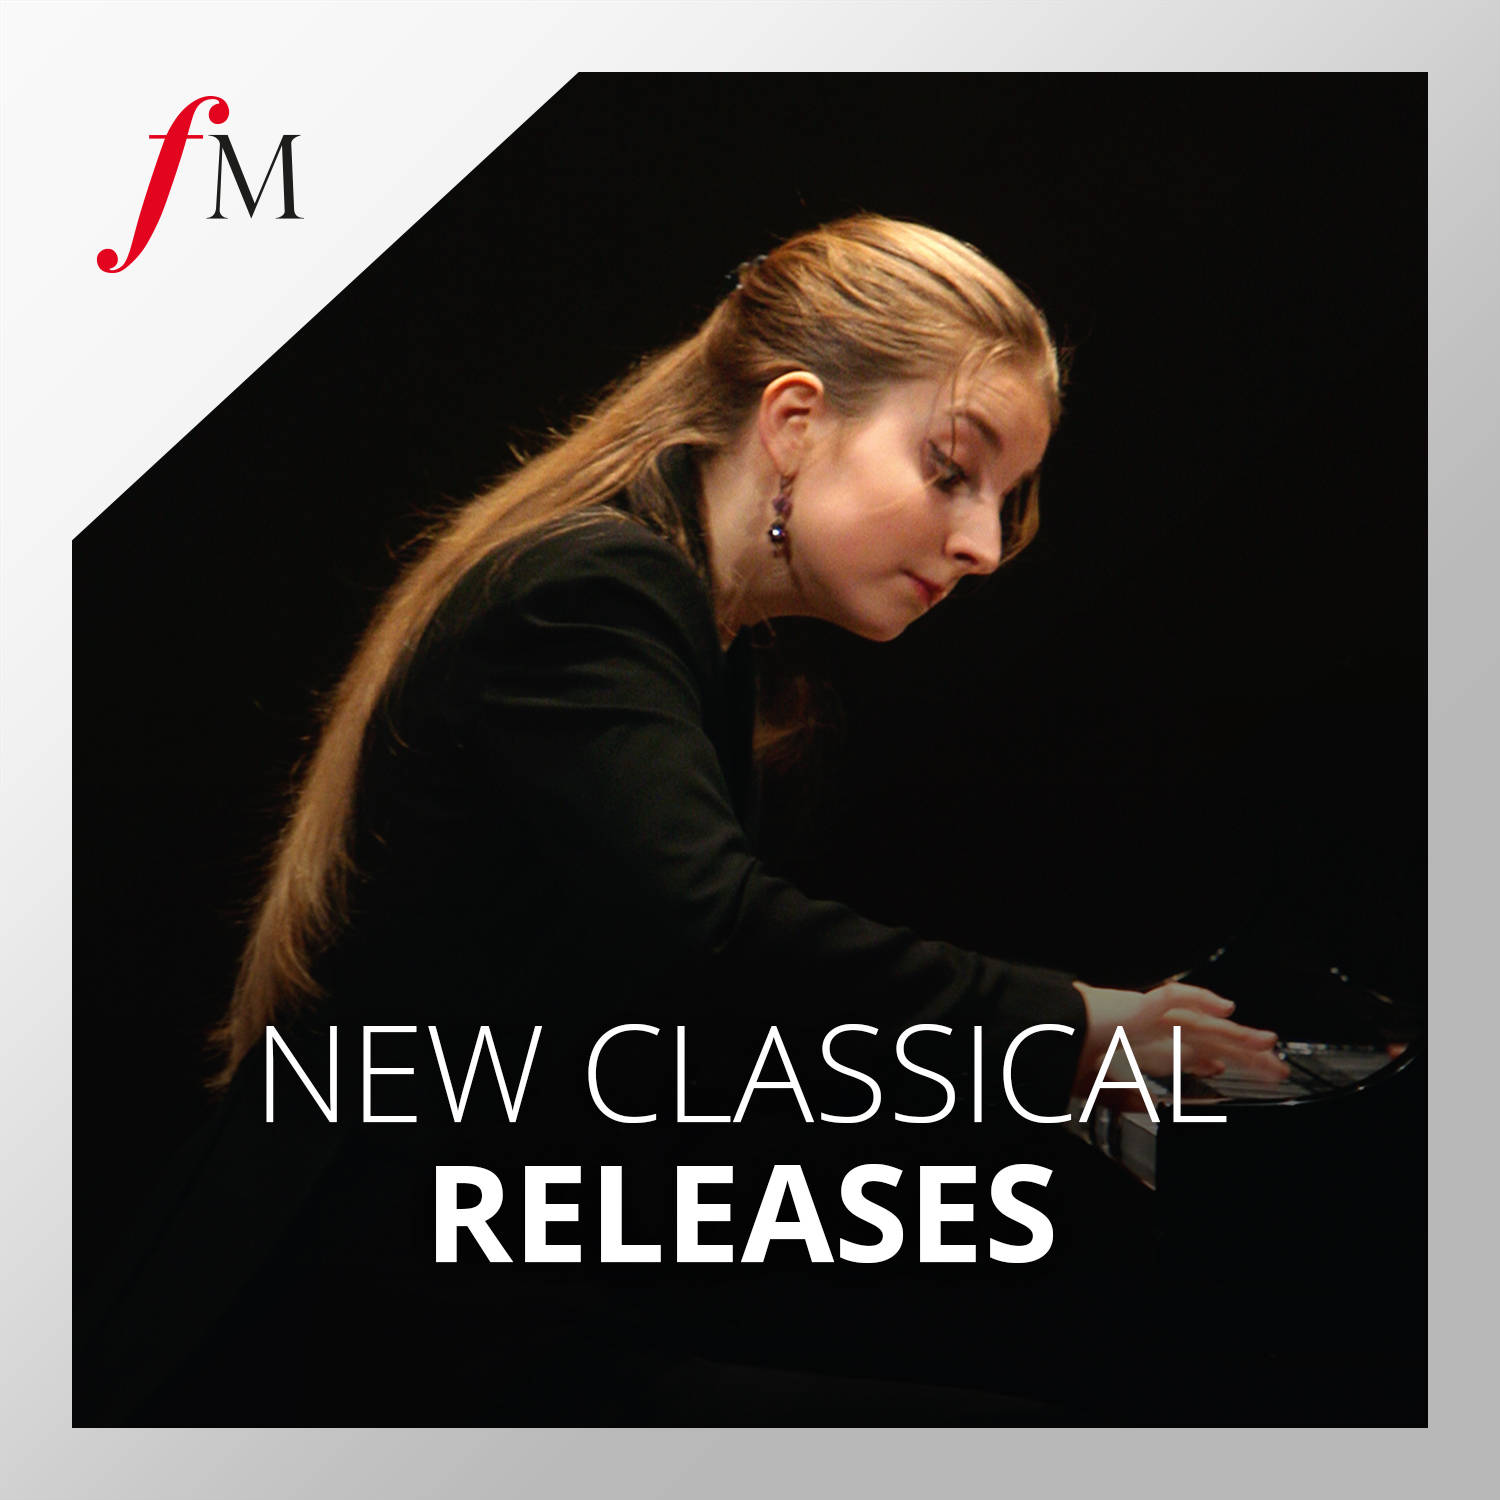 New Classical Releases image